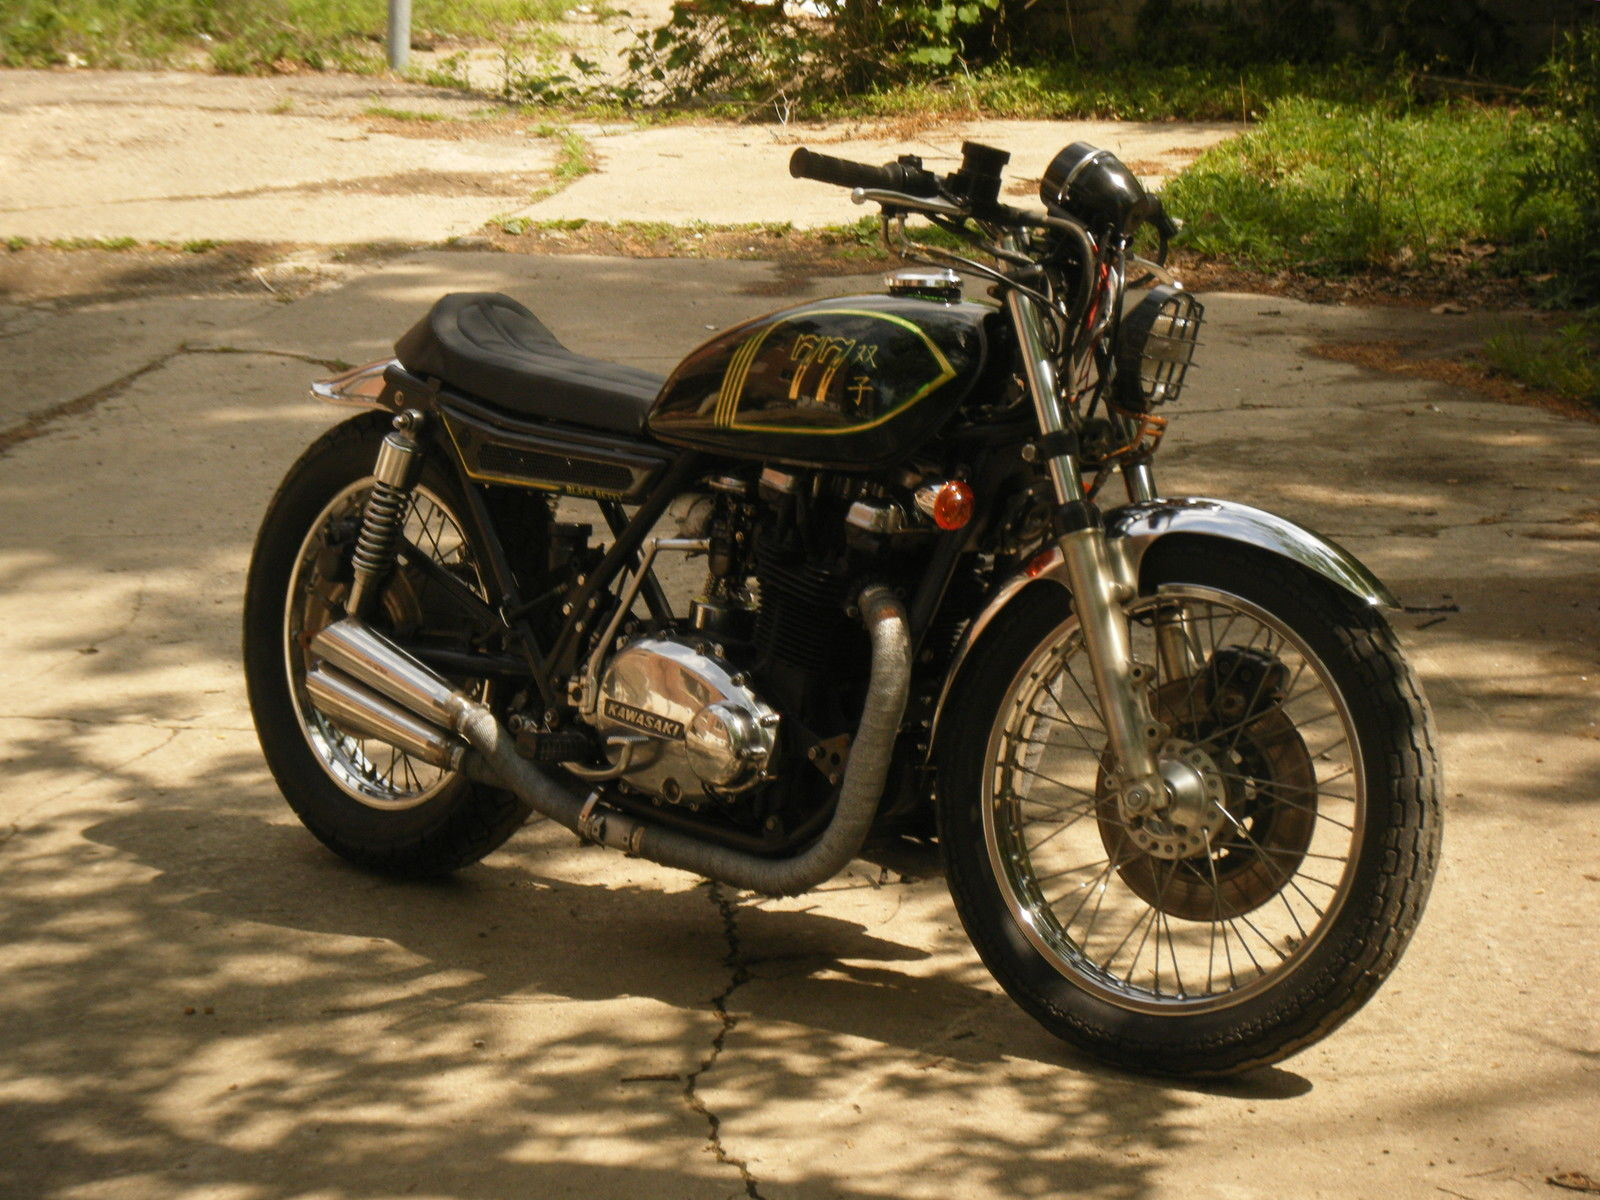 1979 Kawasaki Kz1000 Ltd For Sale Images Of Home Design 77 Wiring Diagram 1977 Kz650 Get Free Image About